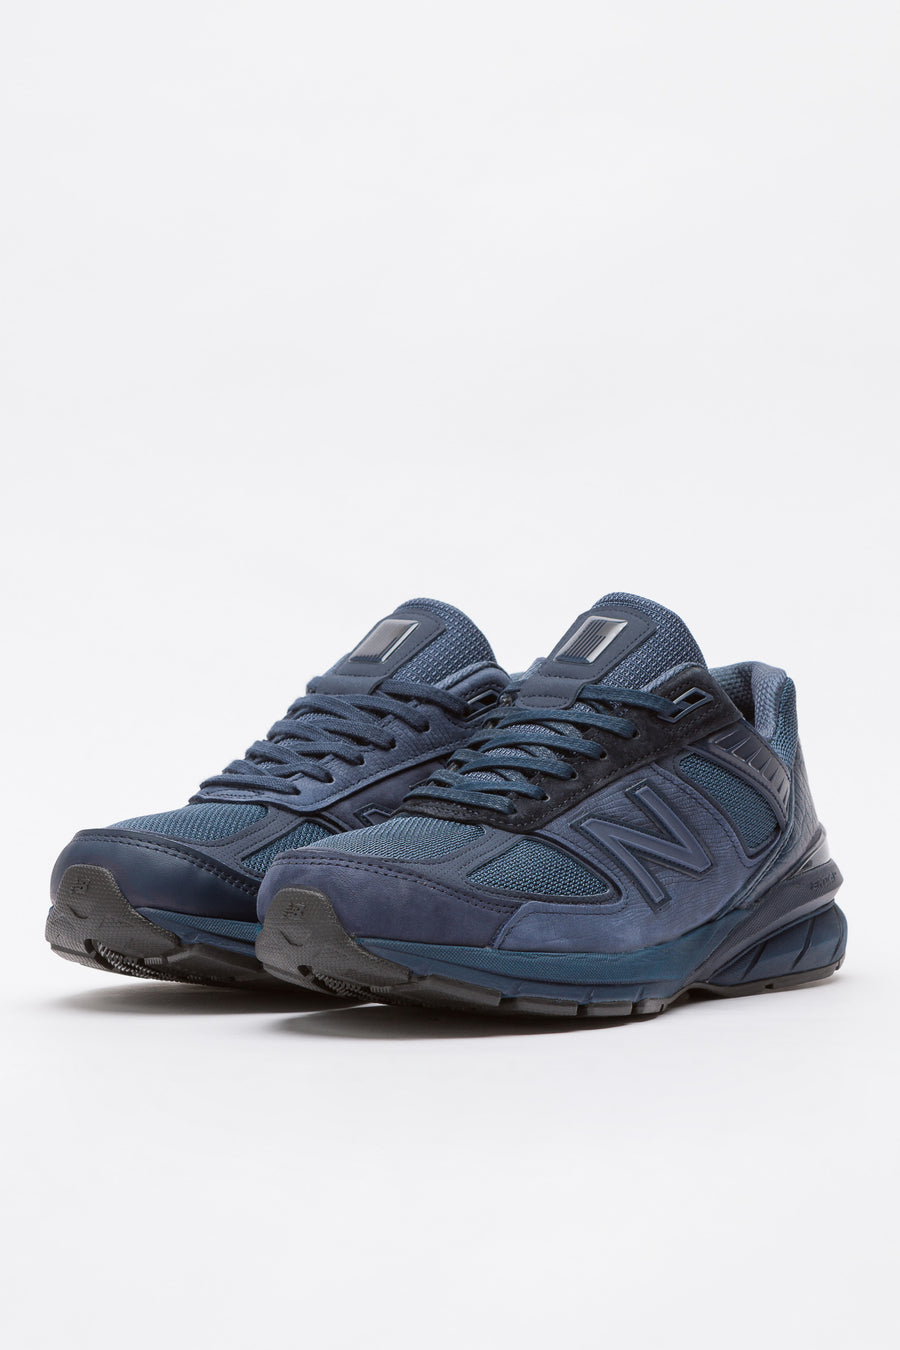 New Balance Engineered Garments M990EGN5 in Navy - Notre